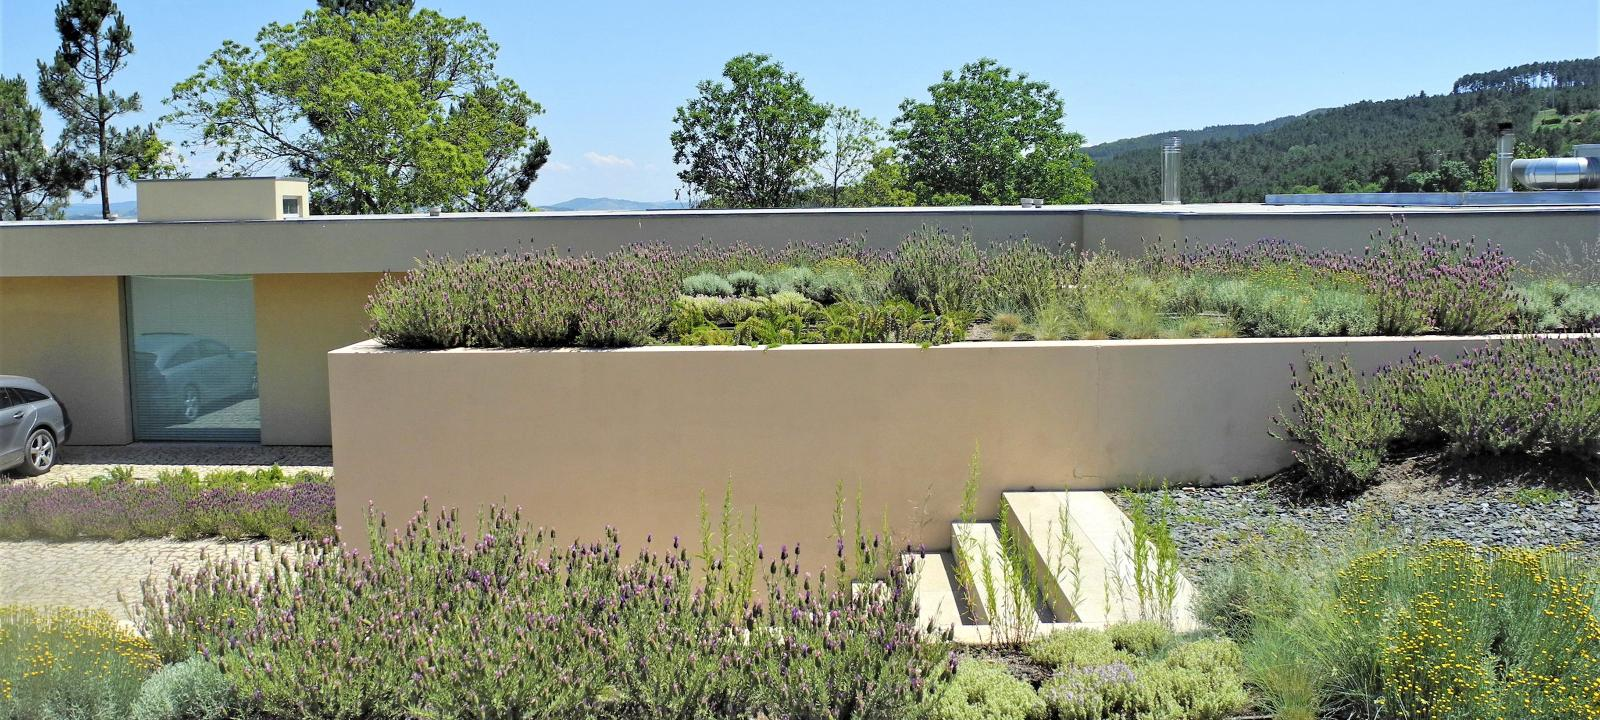 Lavender and herbs on a roof